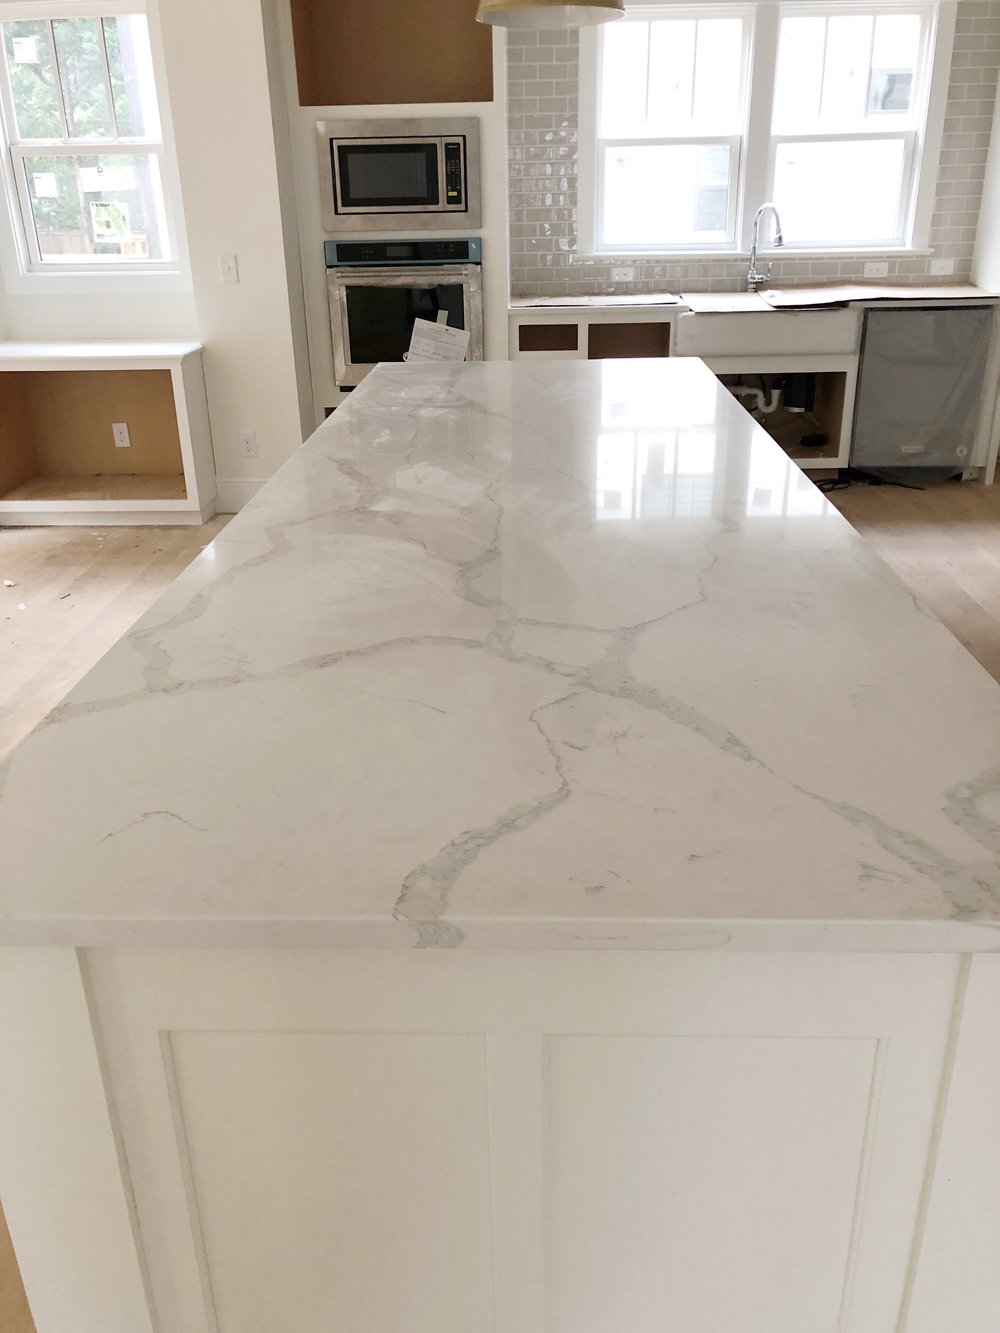 MSI Calacatta Verona Quartz Countertops - New construction Charlotte, NC, Timberline Homes, Interior Design by Laura Design Co.